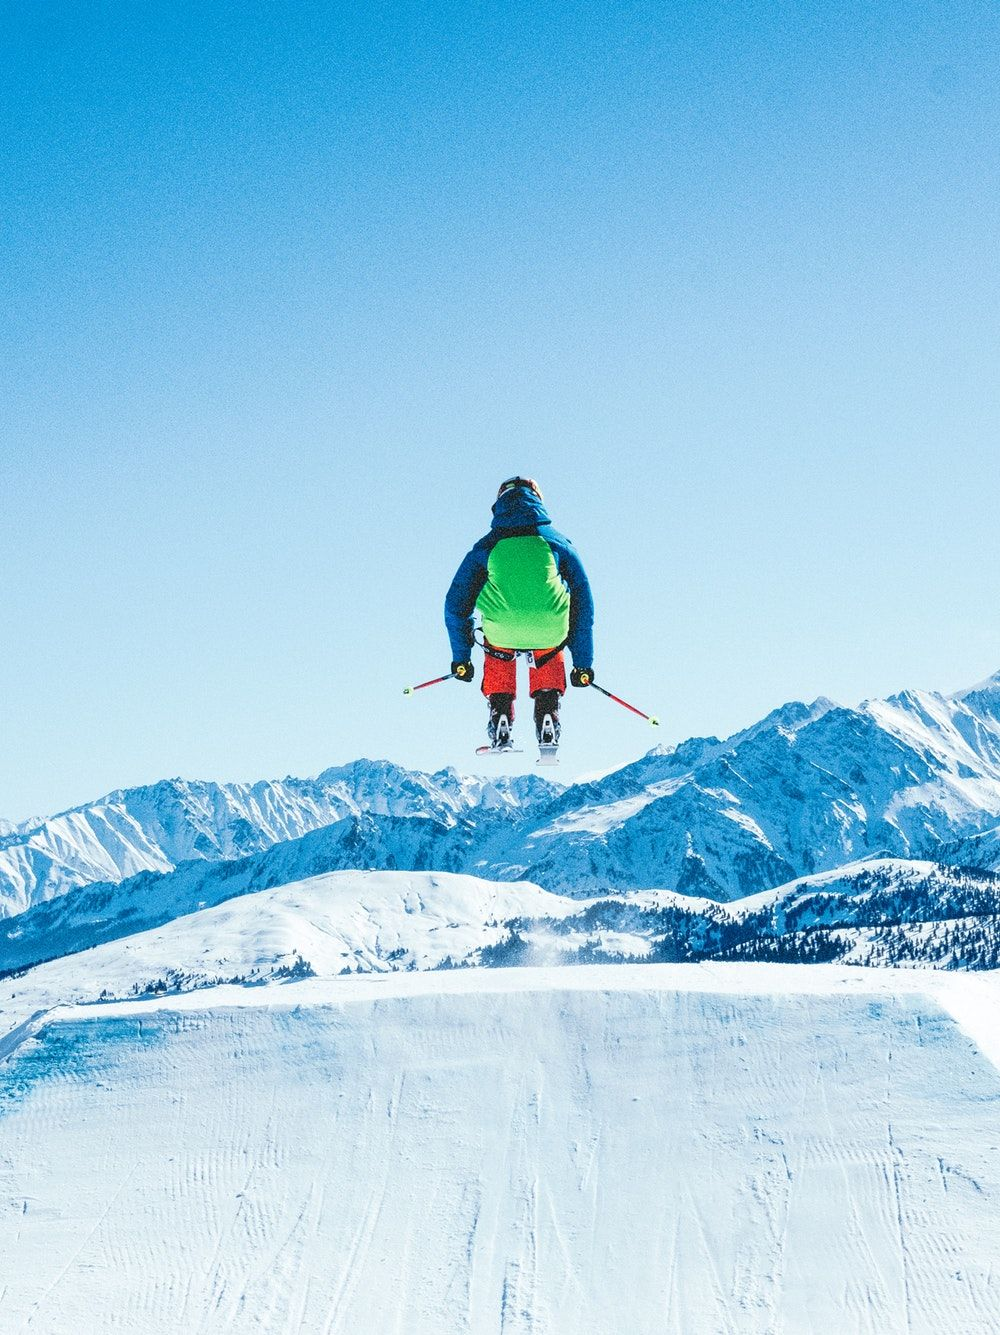 1000x1335 100+ Ski Pictures | Download Free Images & Stock Photos on Unsplash